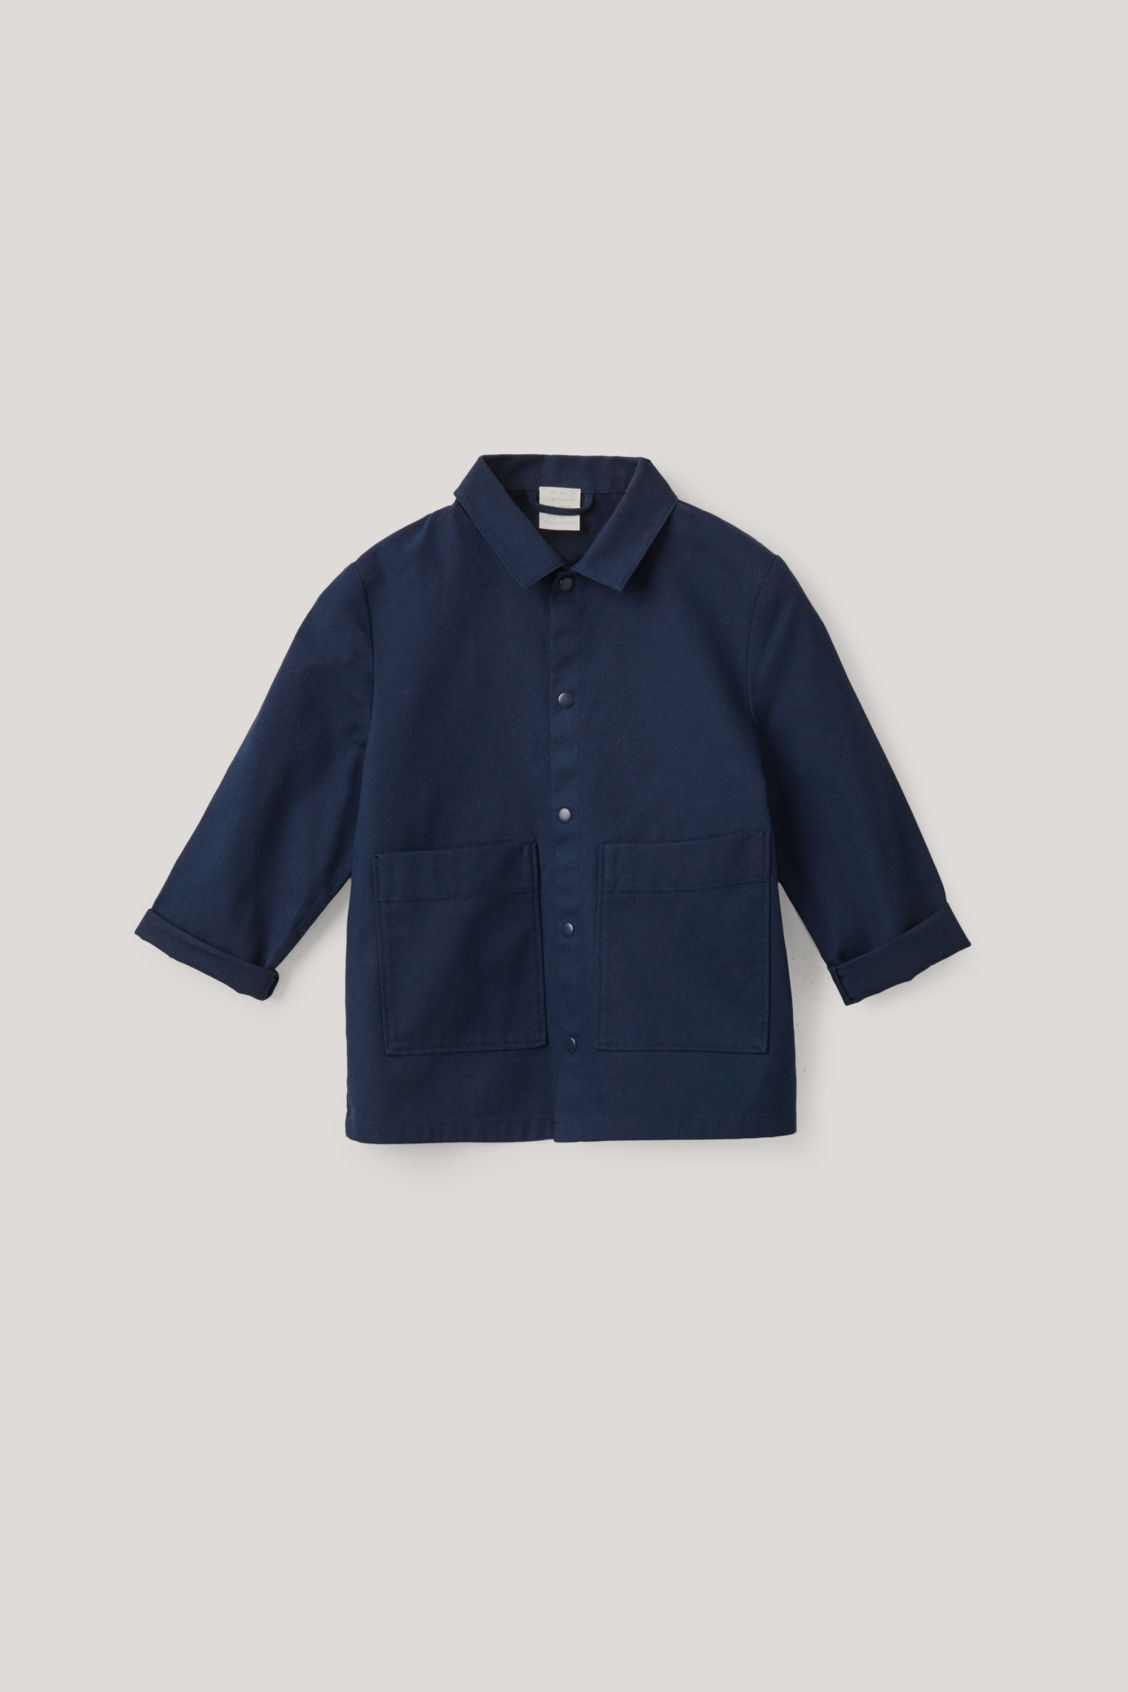 Cos Kids' Cotton Overshirt In Blue